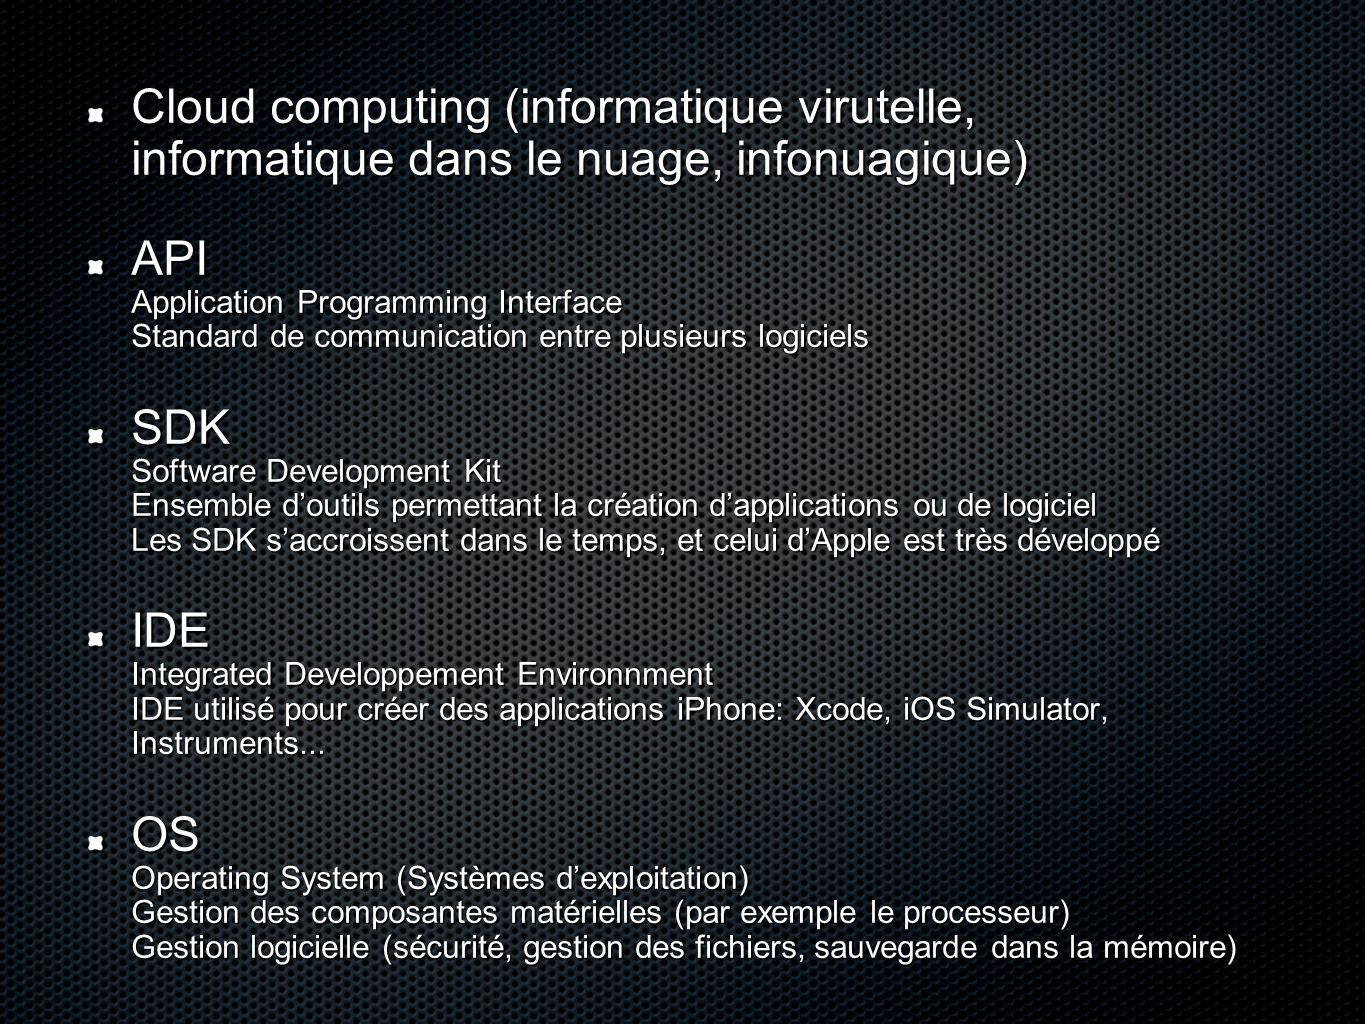 Cloud computing (informatique virutelle, informatique dans le nuage, infonuagique)